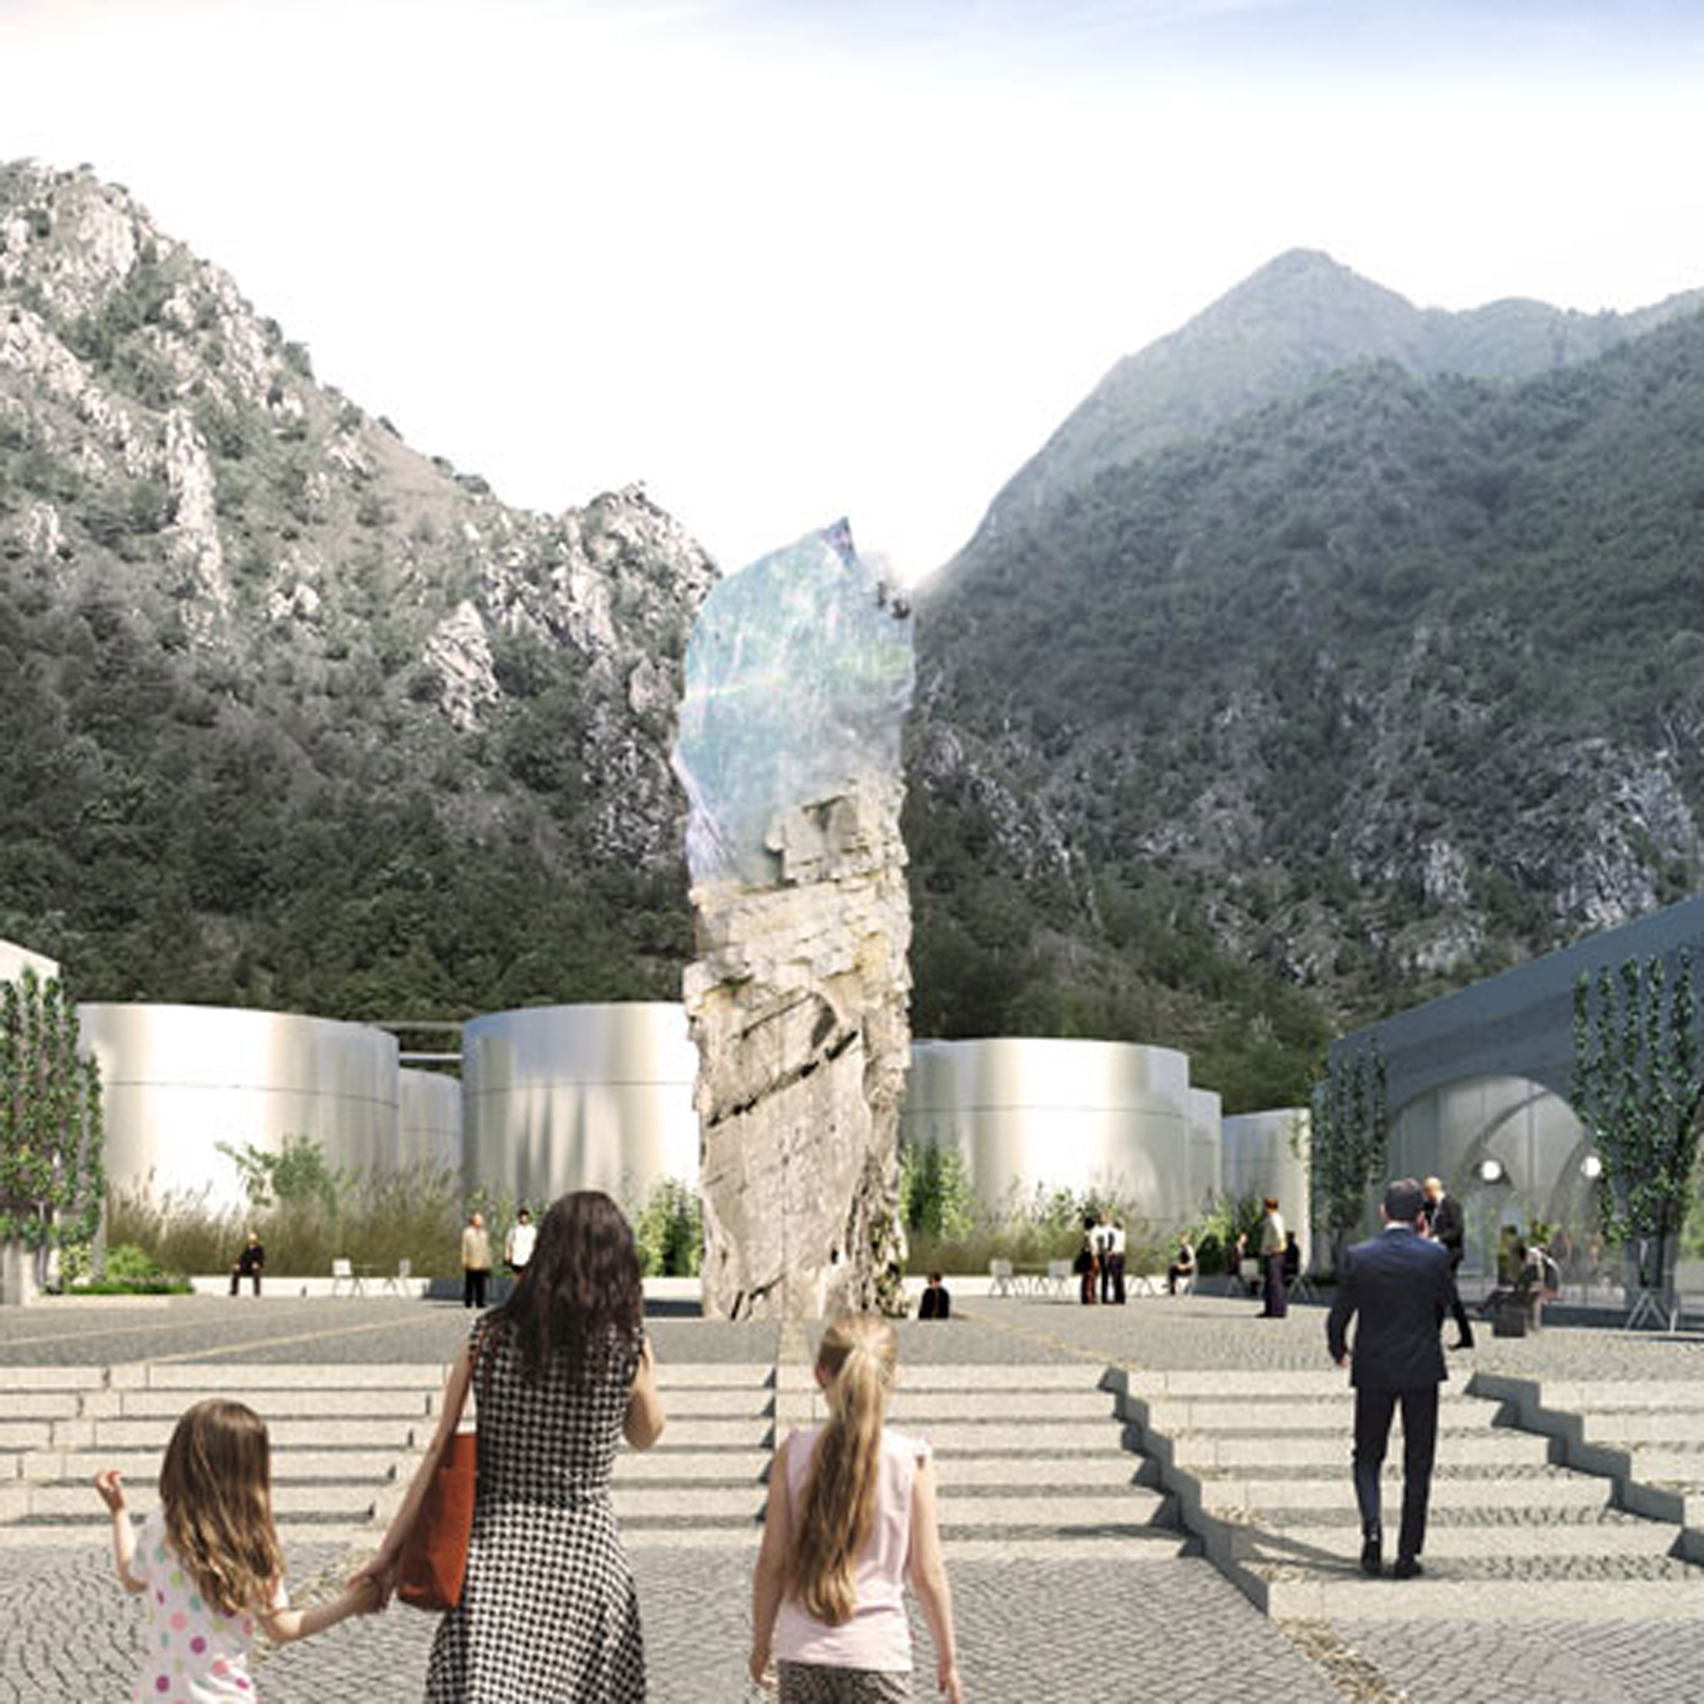 Big Wins Contest For San Pellegrino Bottling Factory In Italy photo